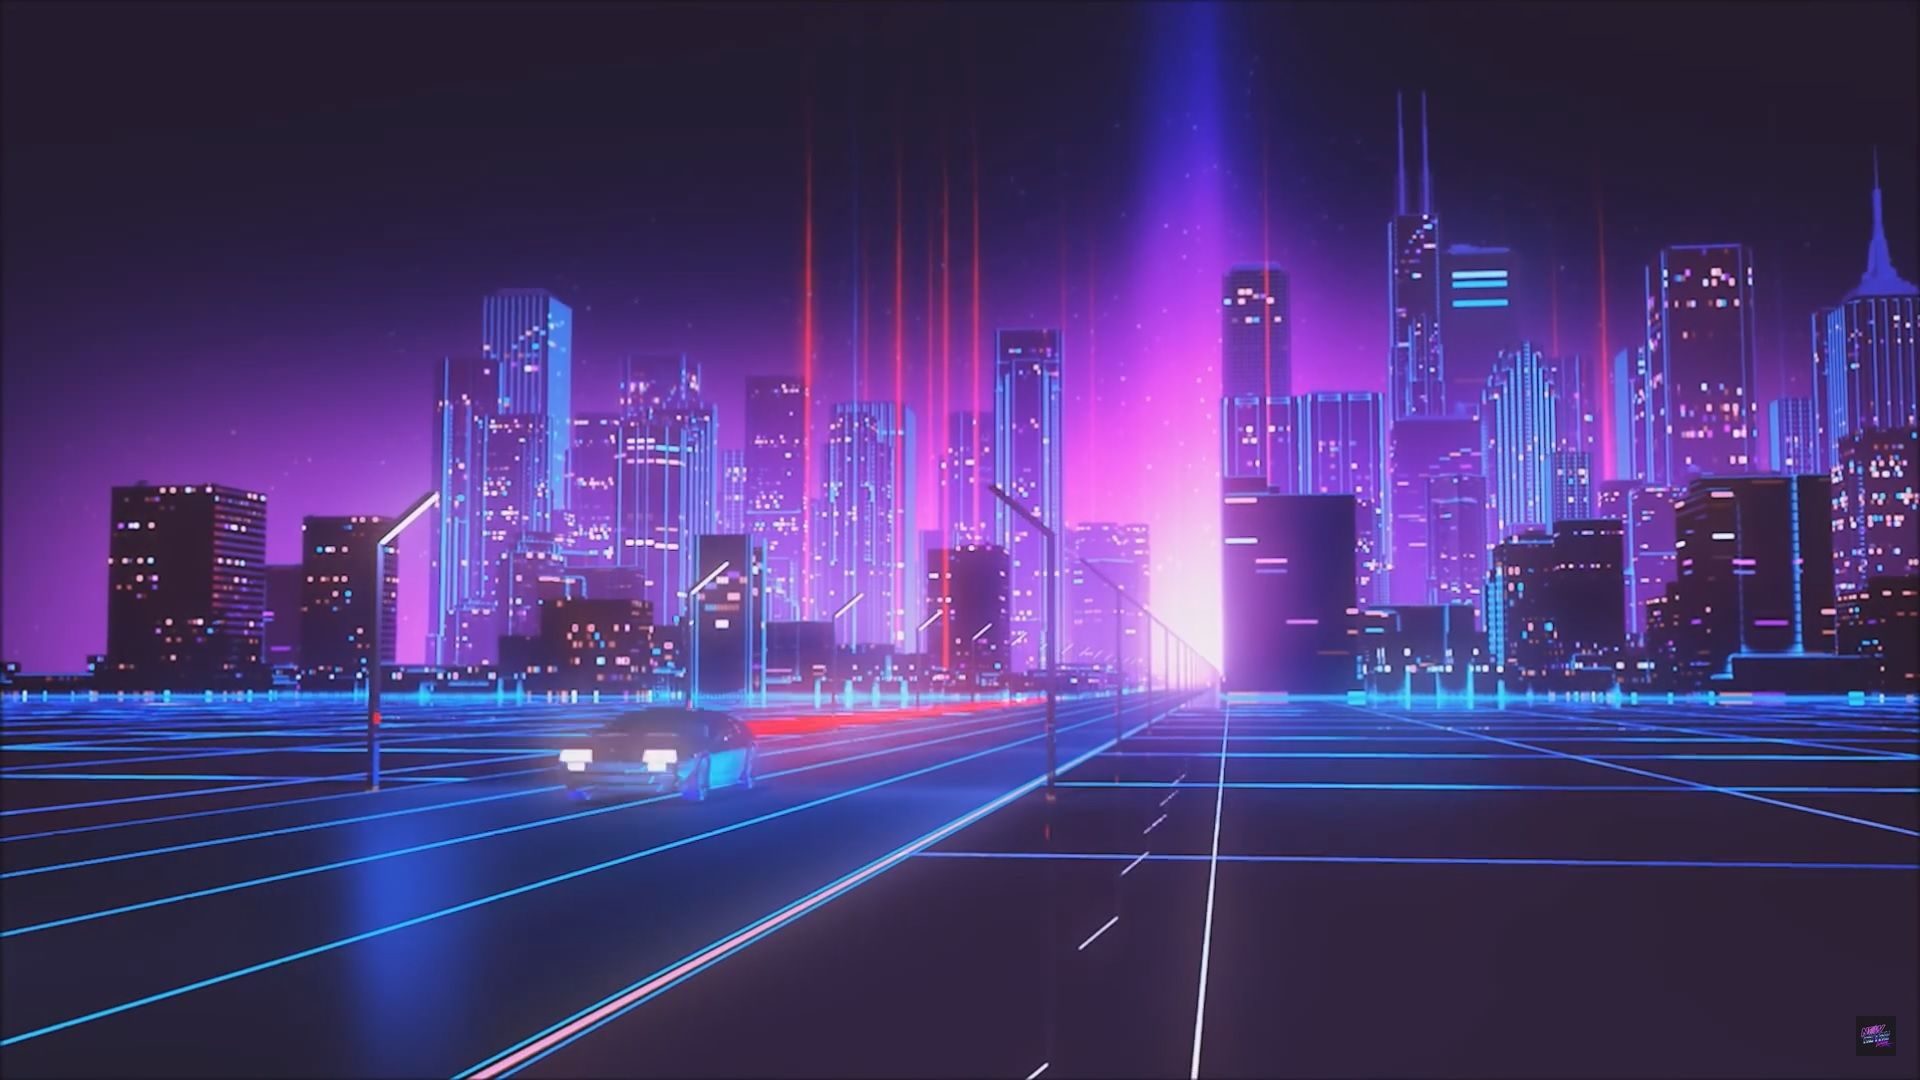 Late Night City Aesthetic